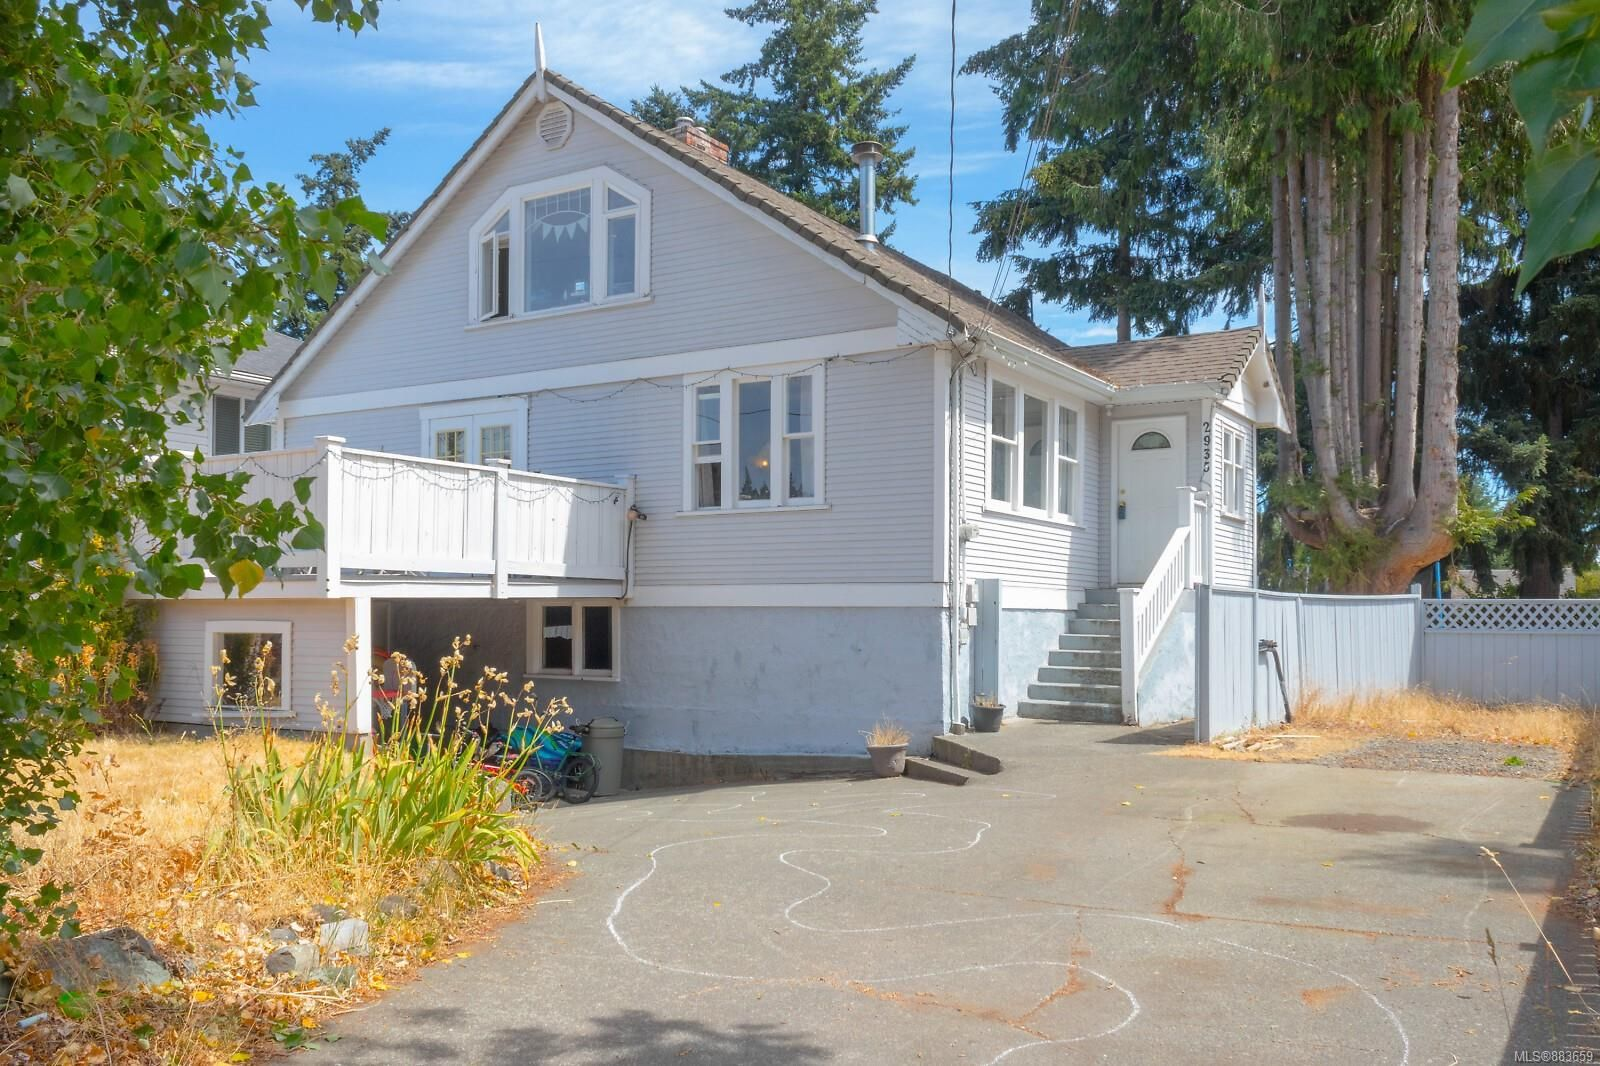 Main Photo: 2935 Merle Dr in : Co Colwood Lake House for sale (Colwood)  : MLS®# 883659